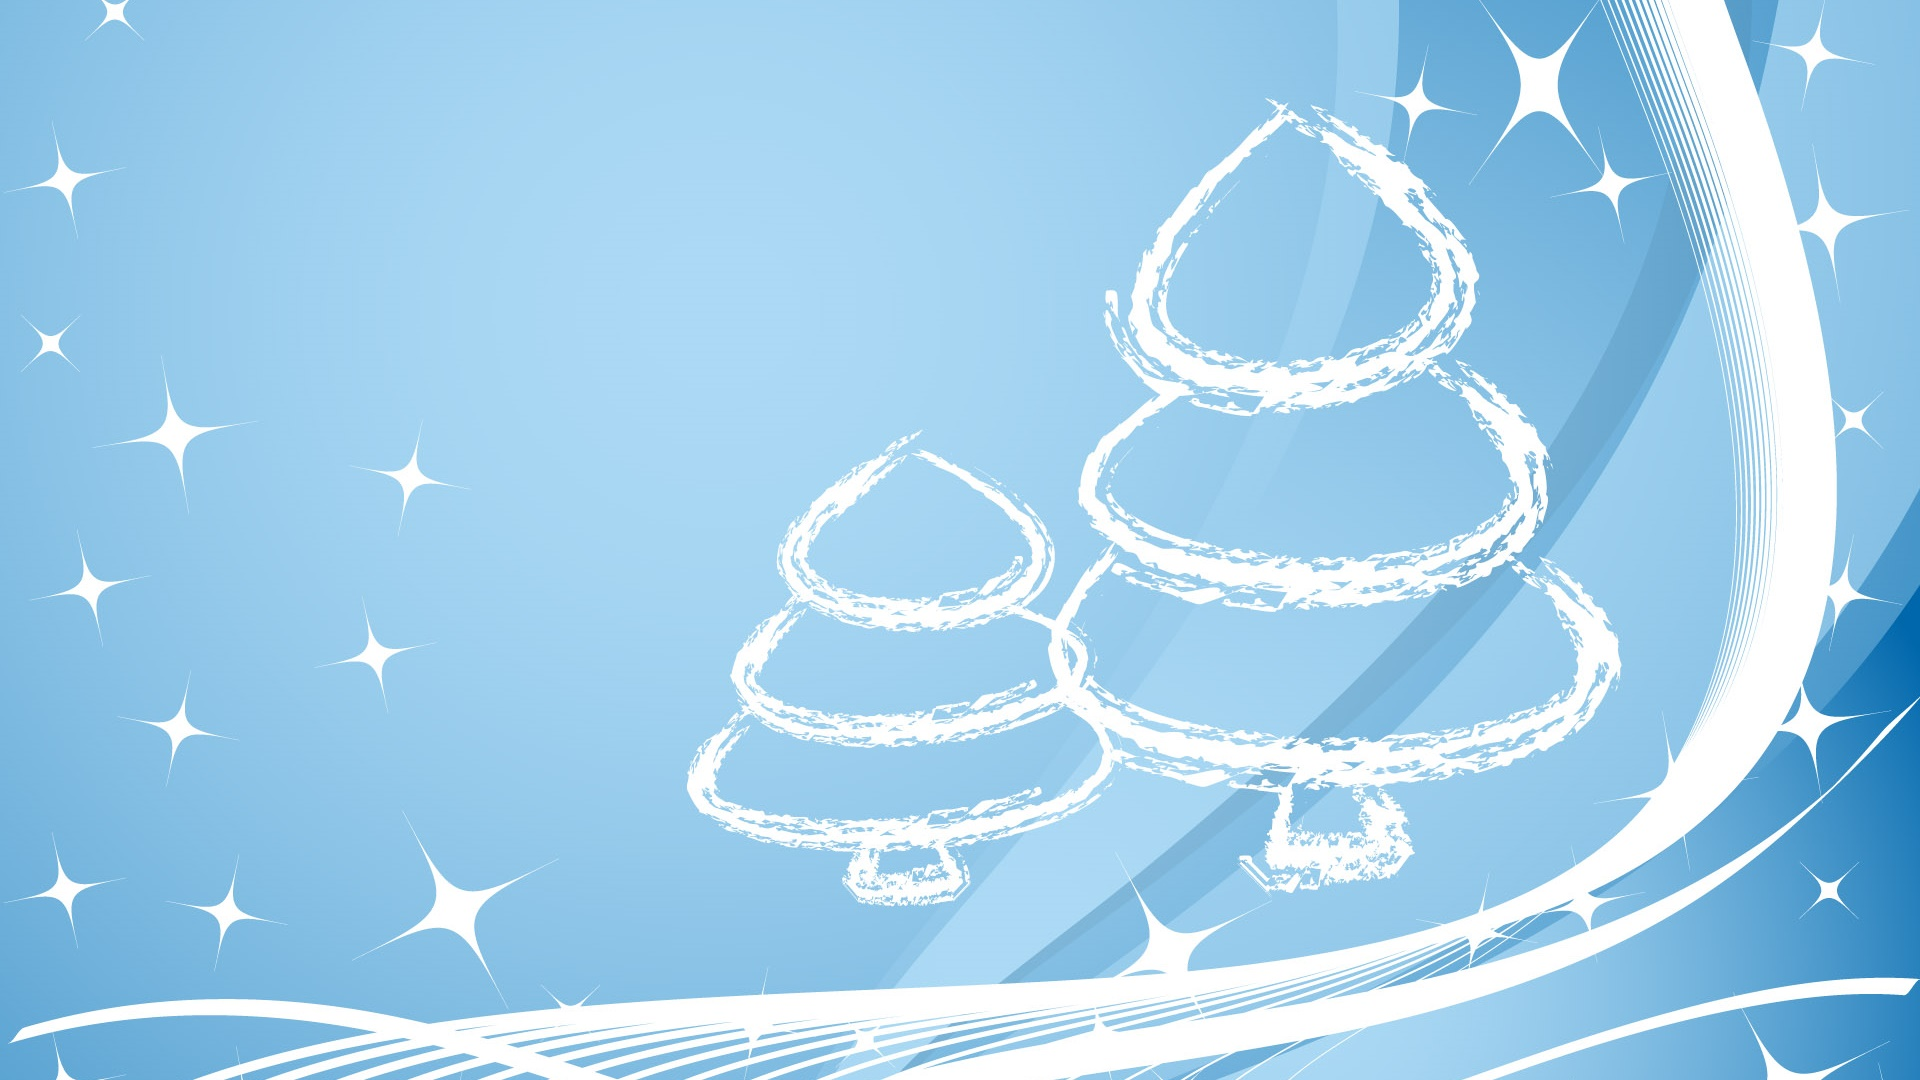 pictures of christmas trees for wallpaper